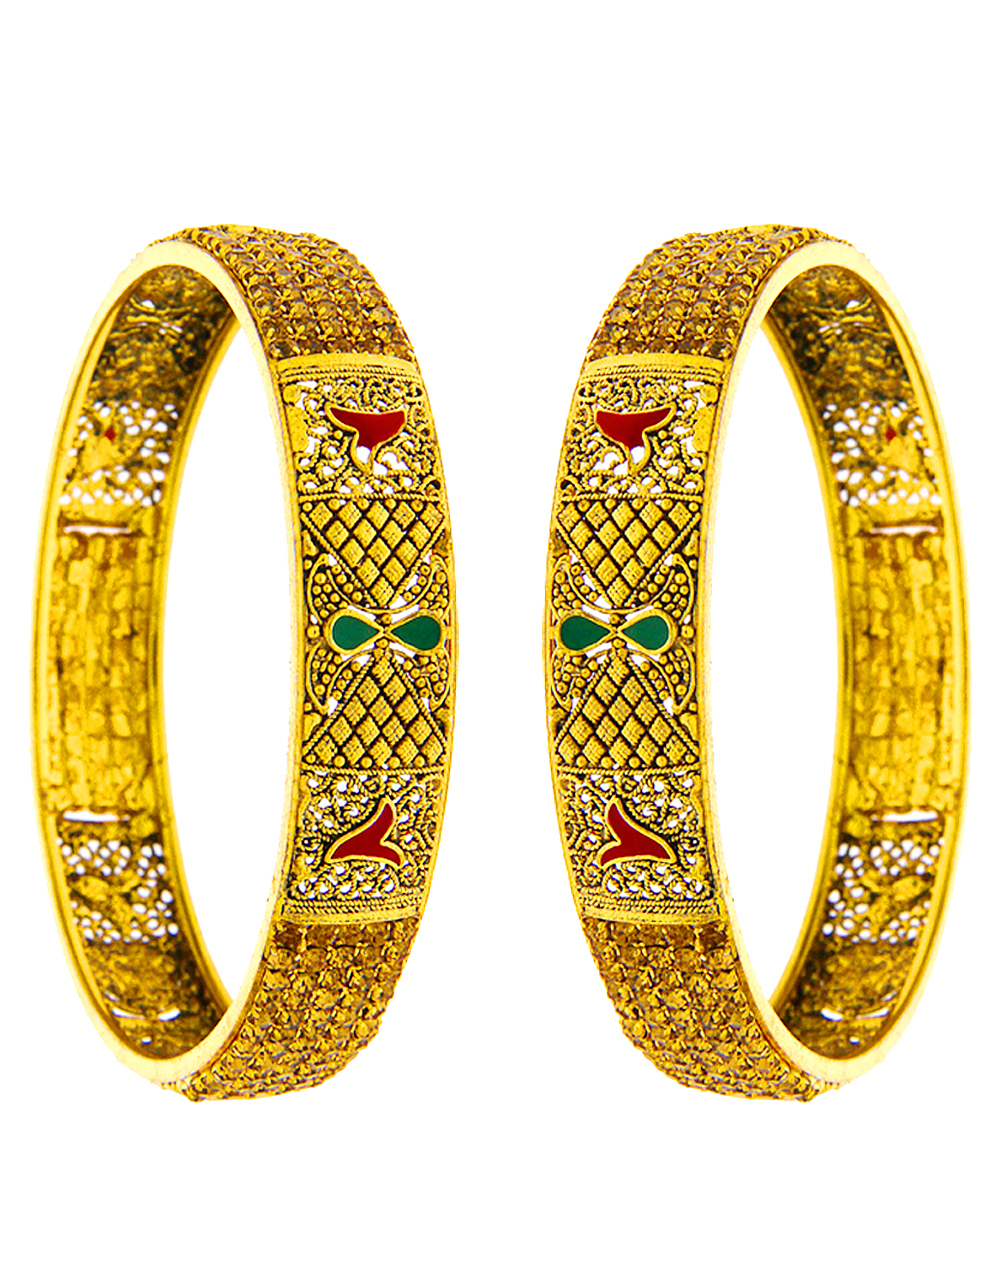 Mina Work Bangles Studded With Stones Fancy Bangles